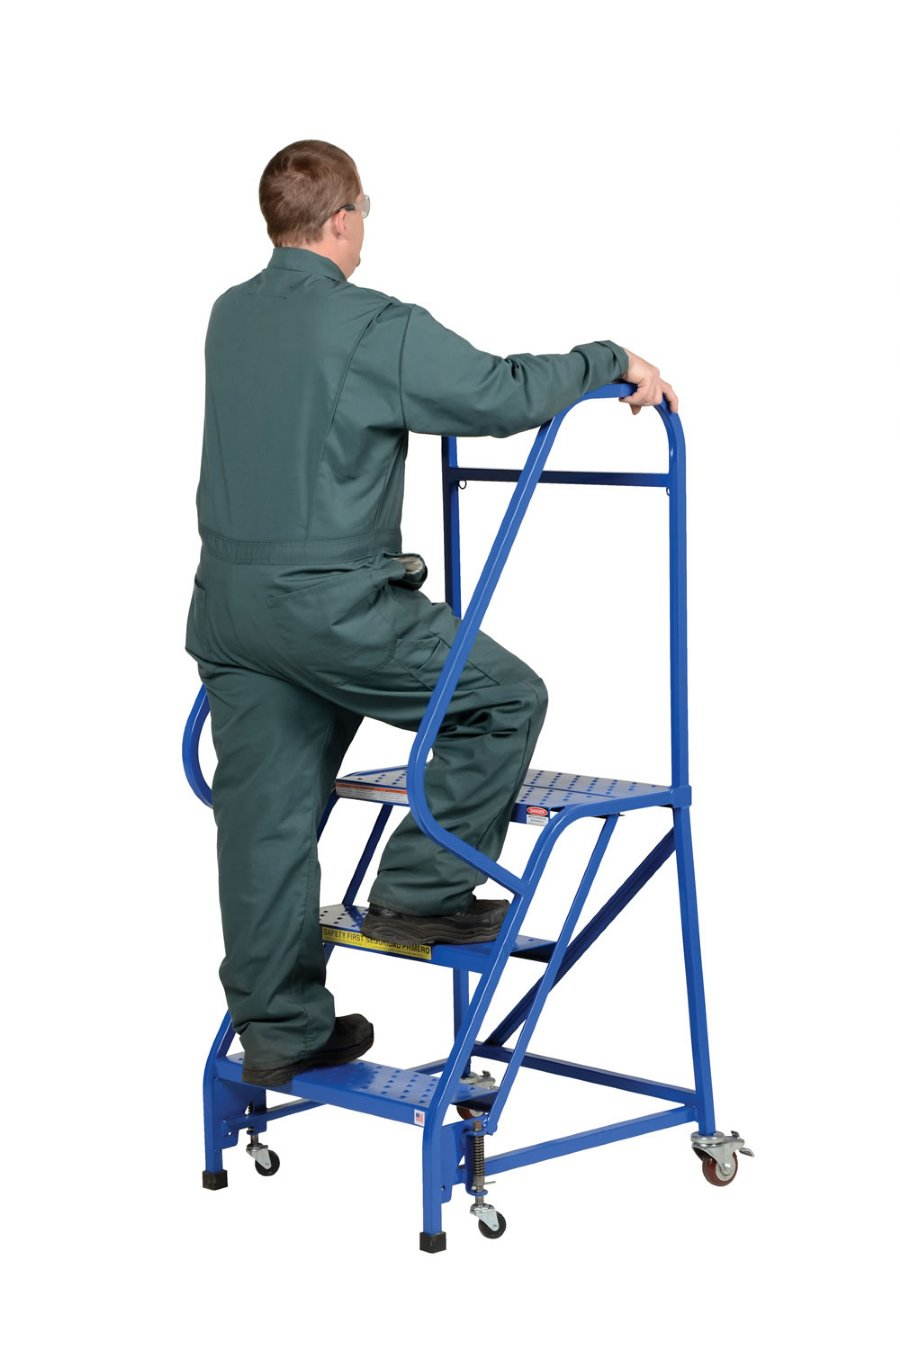 6 Step Portable Warehouse Ladders With 18 Quot Wide Perforated